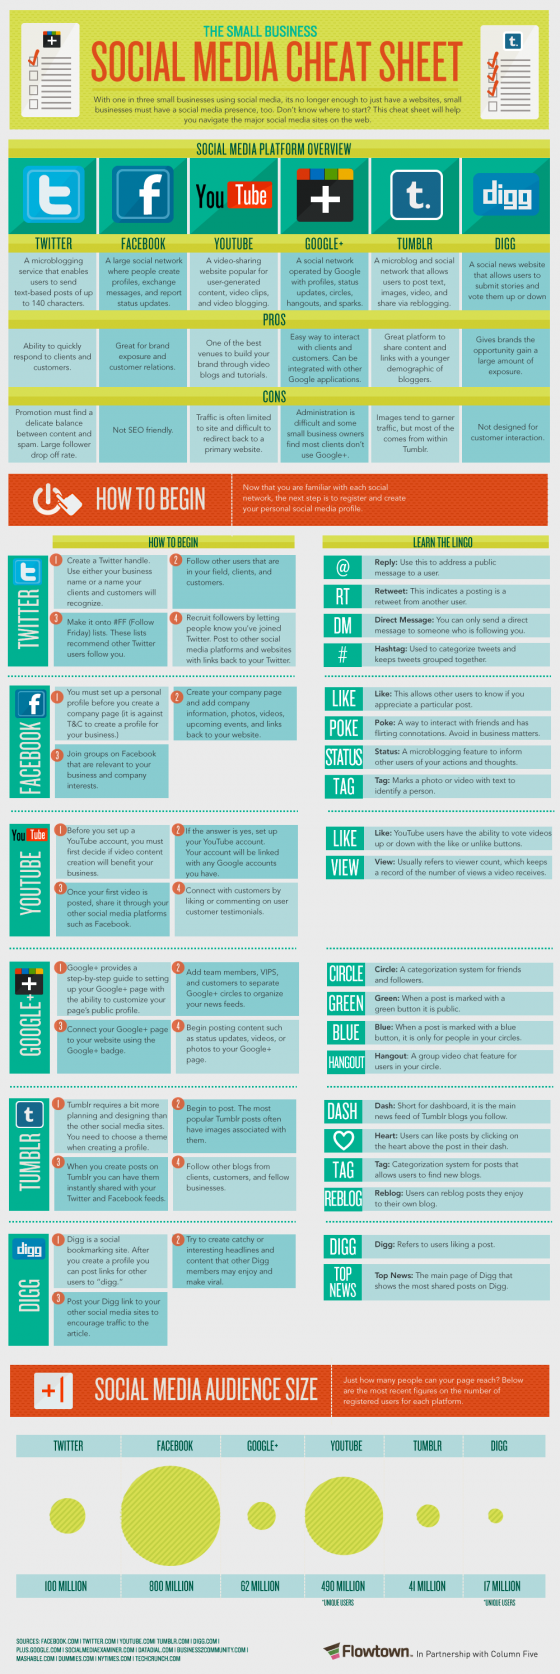 pymes_redessociales_infografia